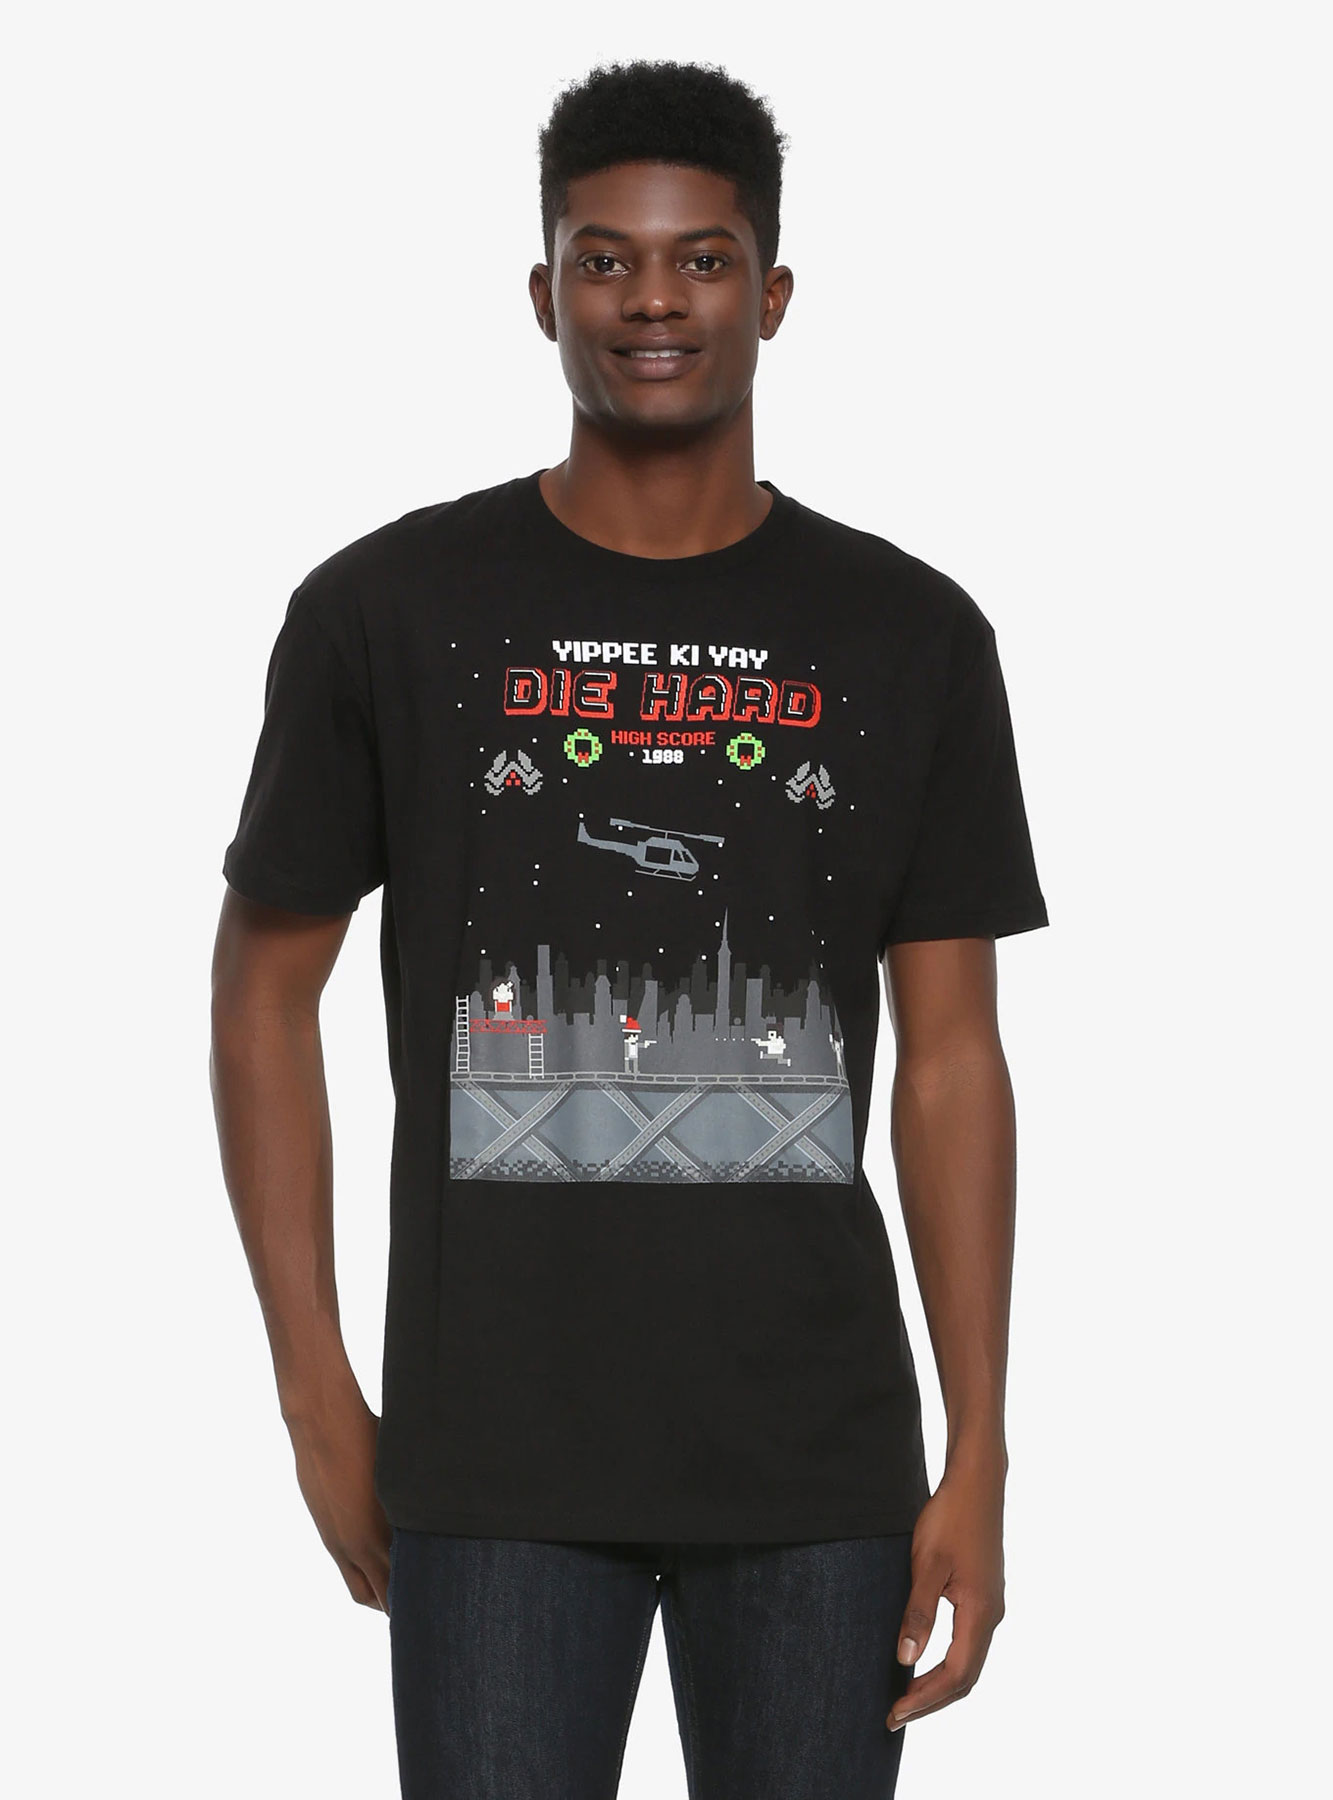 Die Hard giftsDie Hard 8-bit Tee (Available at Box Lunch)